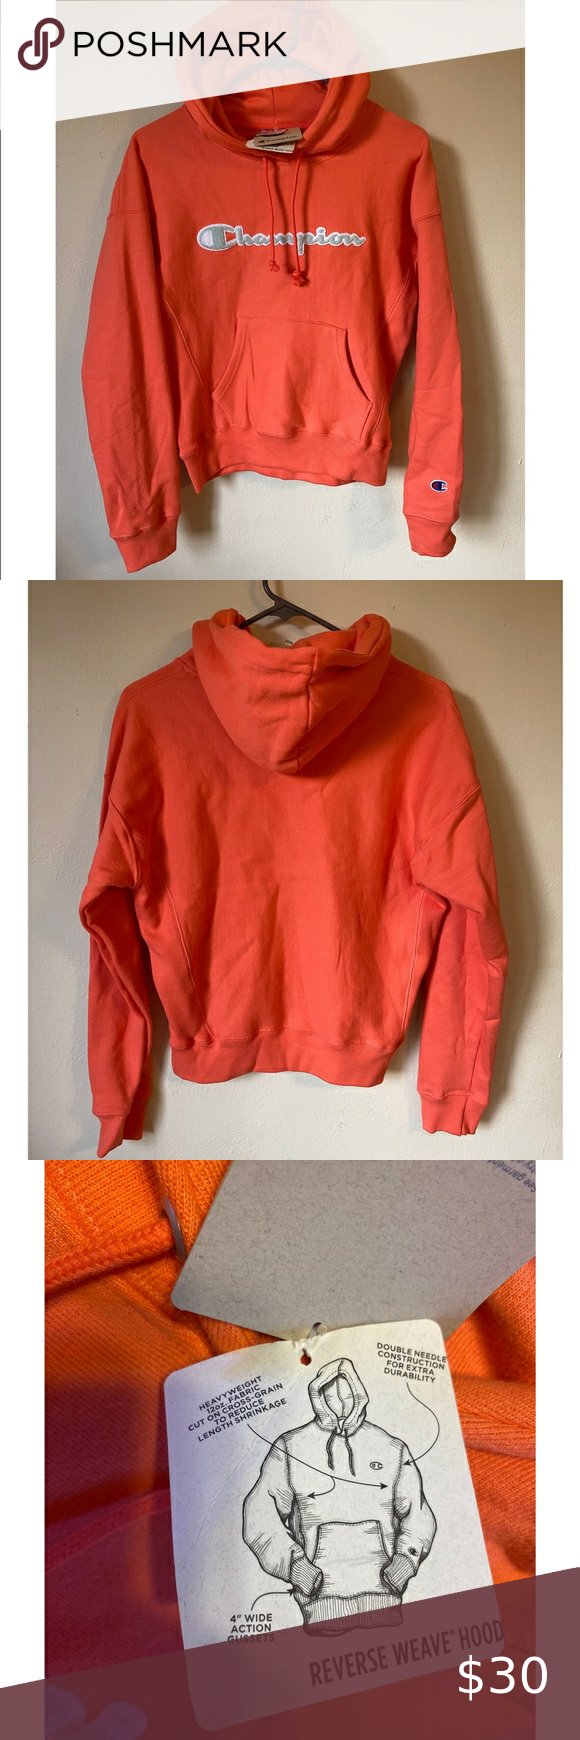 Nwt Women S Champion Hoodie Nwt Women S Hoodie In A Bright Coral Salmon Color Unique Reverse Weave Hood Detail On Sides Champion Hoodie Hoodies Champion Tops [ 1740 x 580 Pixel ]